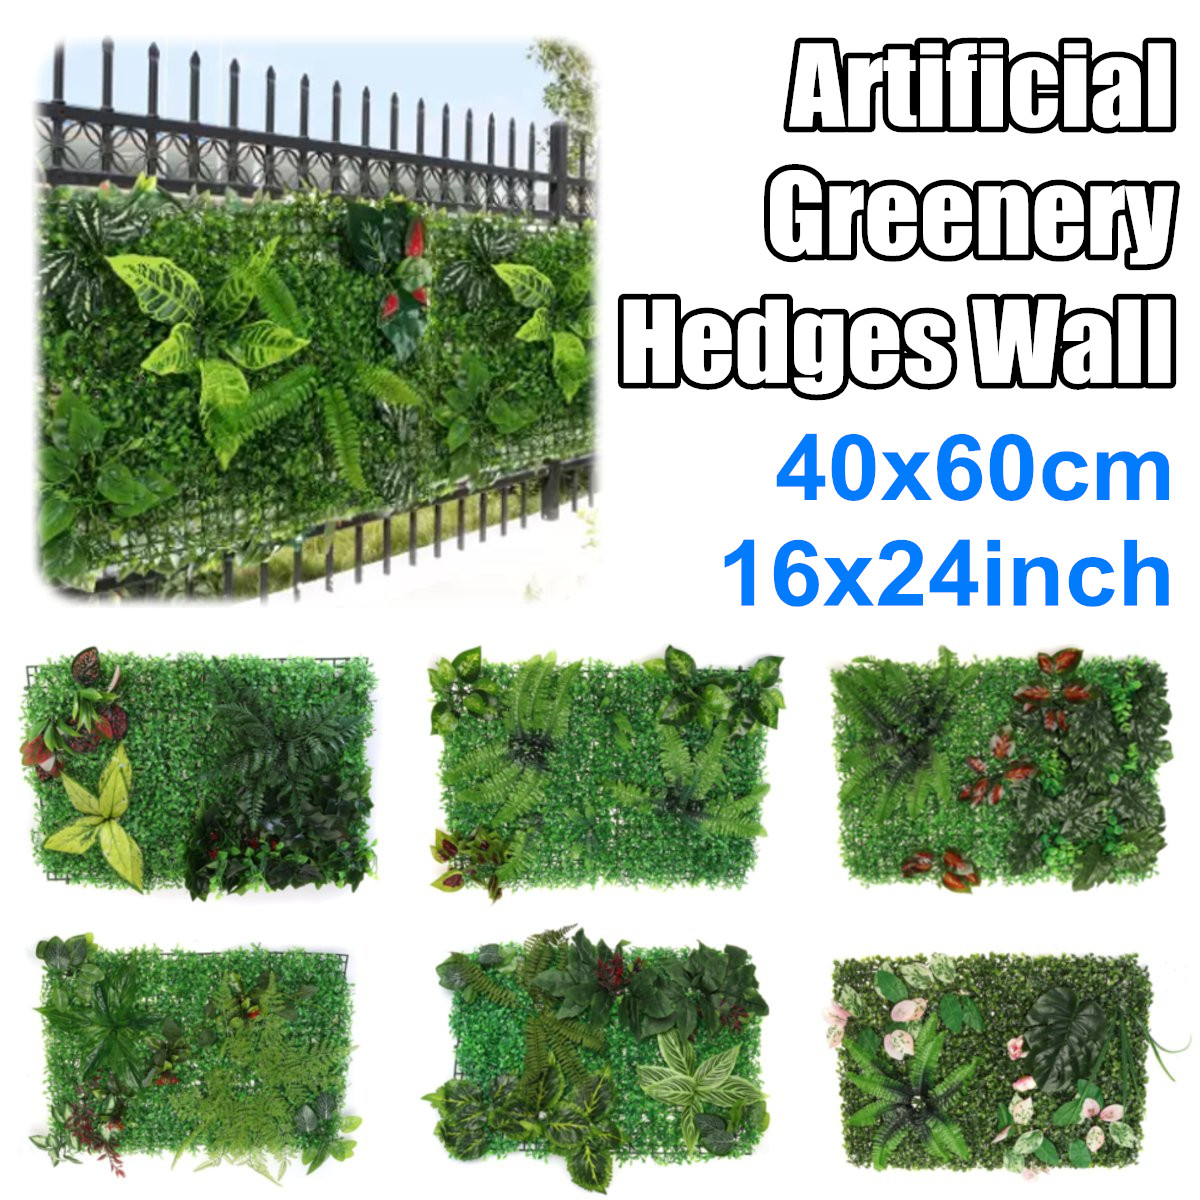 Artificial Topiary Hedges Panels Garden Fence Green Wall Backdrop Decor 40x60cm Pattern 1 Buy Online At Best Prices In Bangladesh Daraz Com Bd